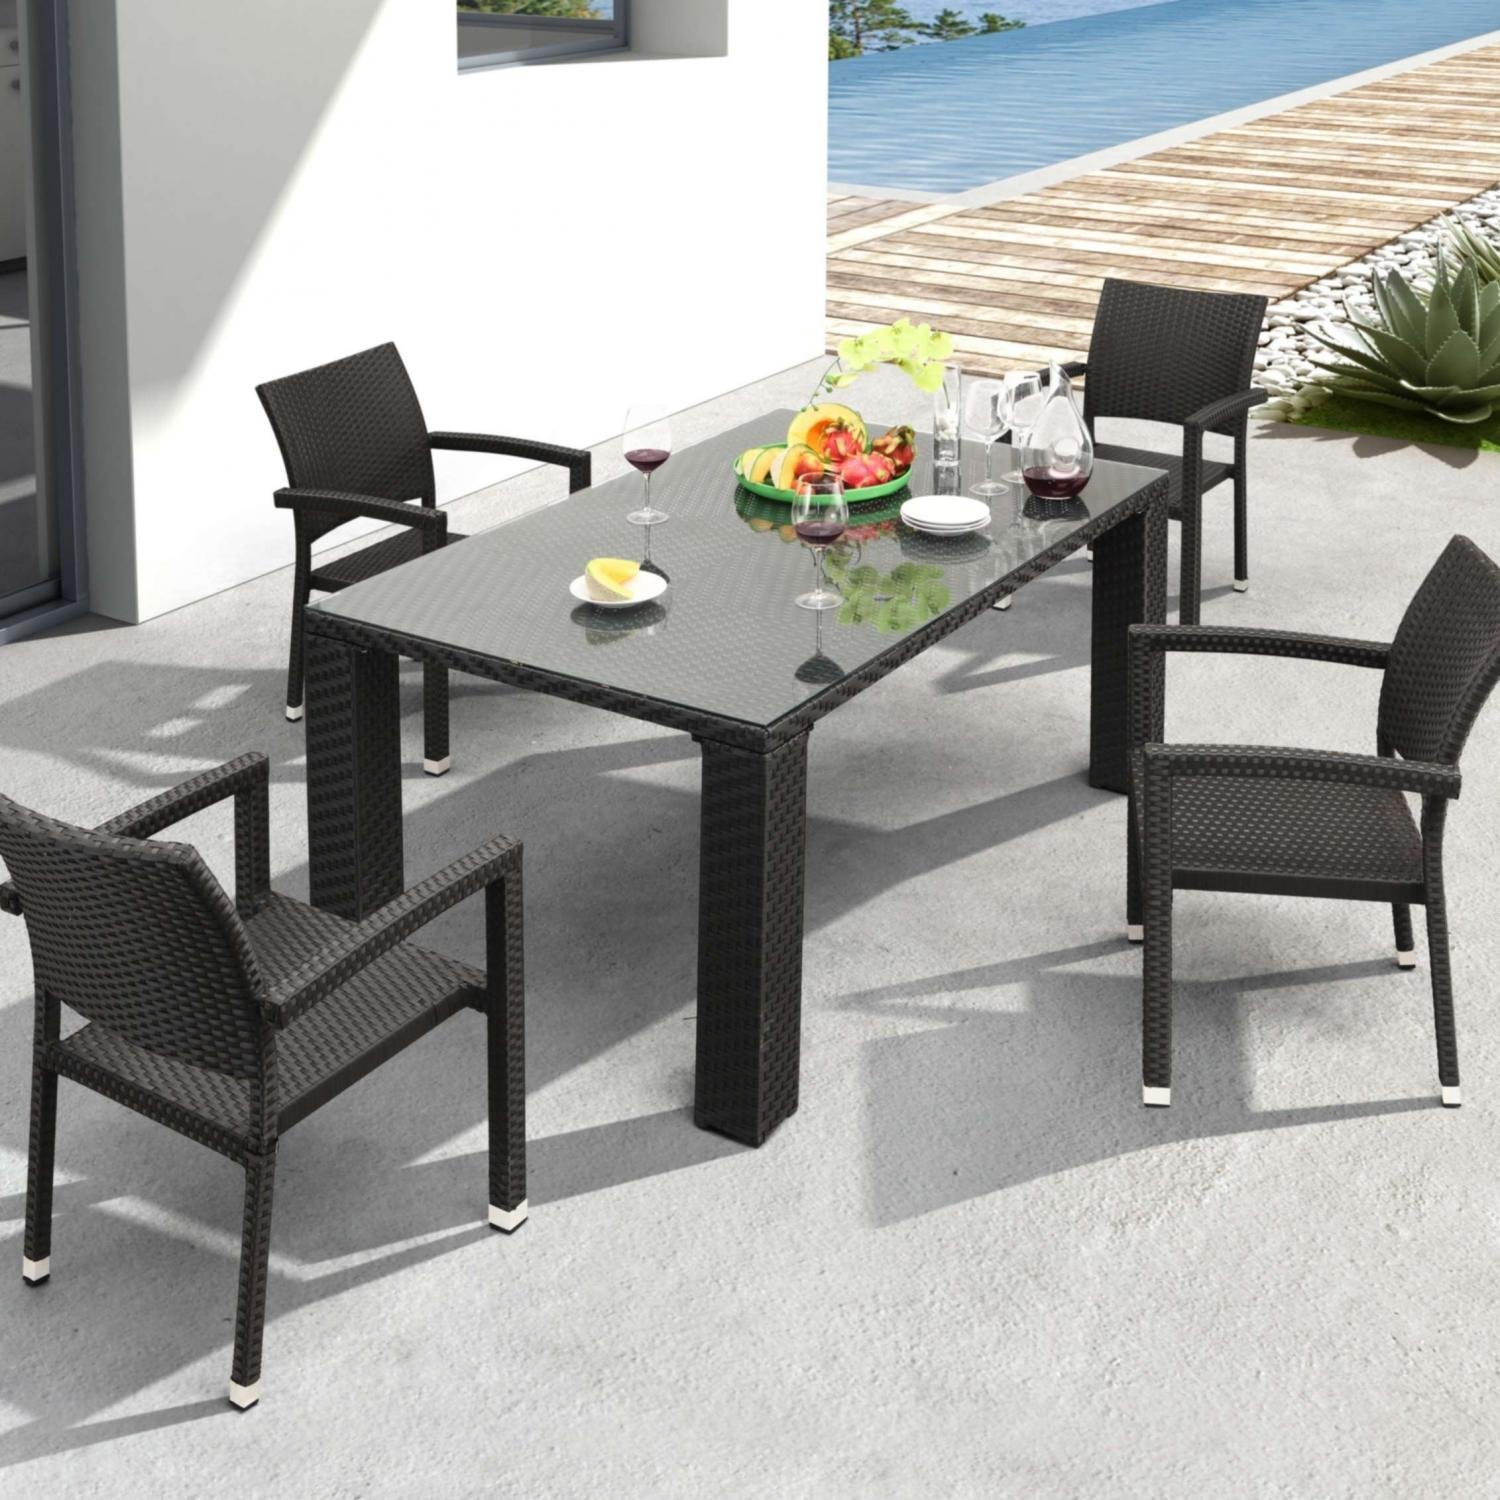 Zuo Modern Boracay Patio Dining Set With Glass Top Table - Seats 4